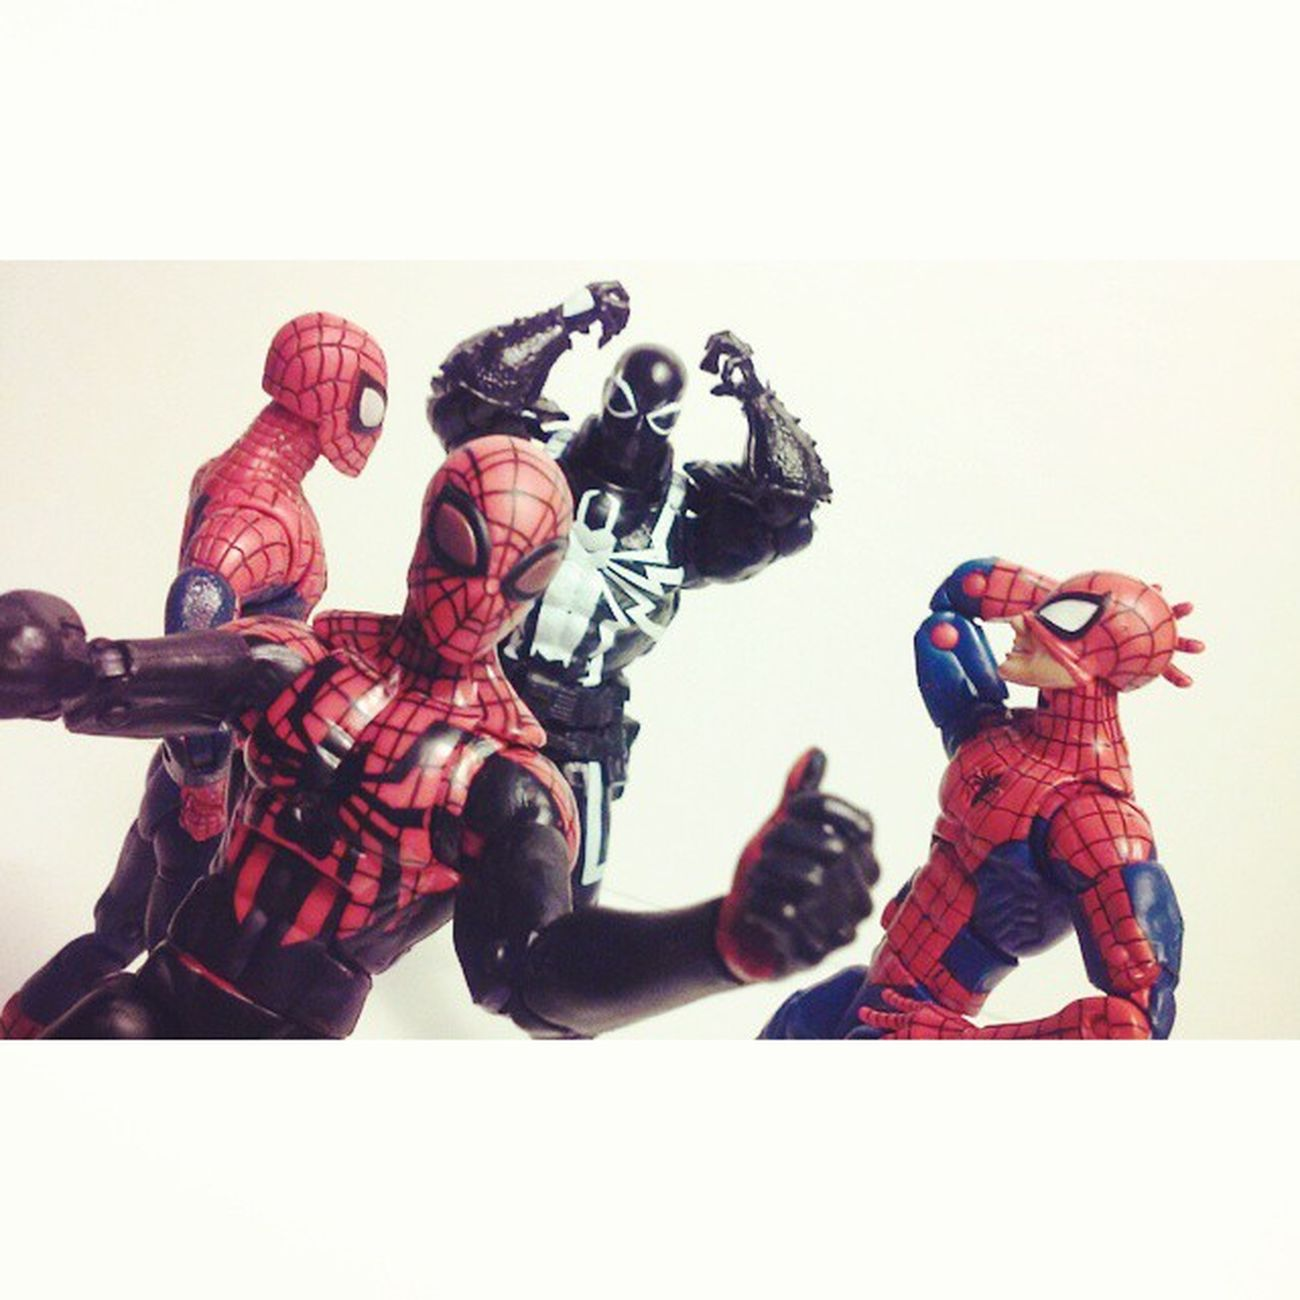 W-whos the real spidey!? Spiderblood Spidey Spiderman Hasbro Amazingspiderman Classicspiderman Surperiorspiderman Amazingspiderman2 Infinitieseries Disney Marvellegends Marvel Marvelcomic Manchild Partytime Webwarriors